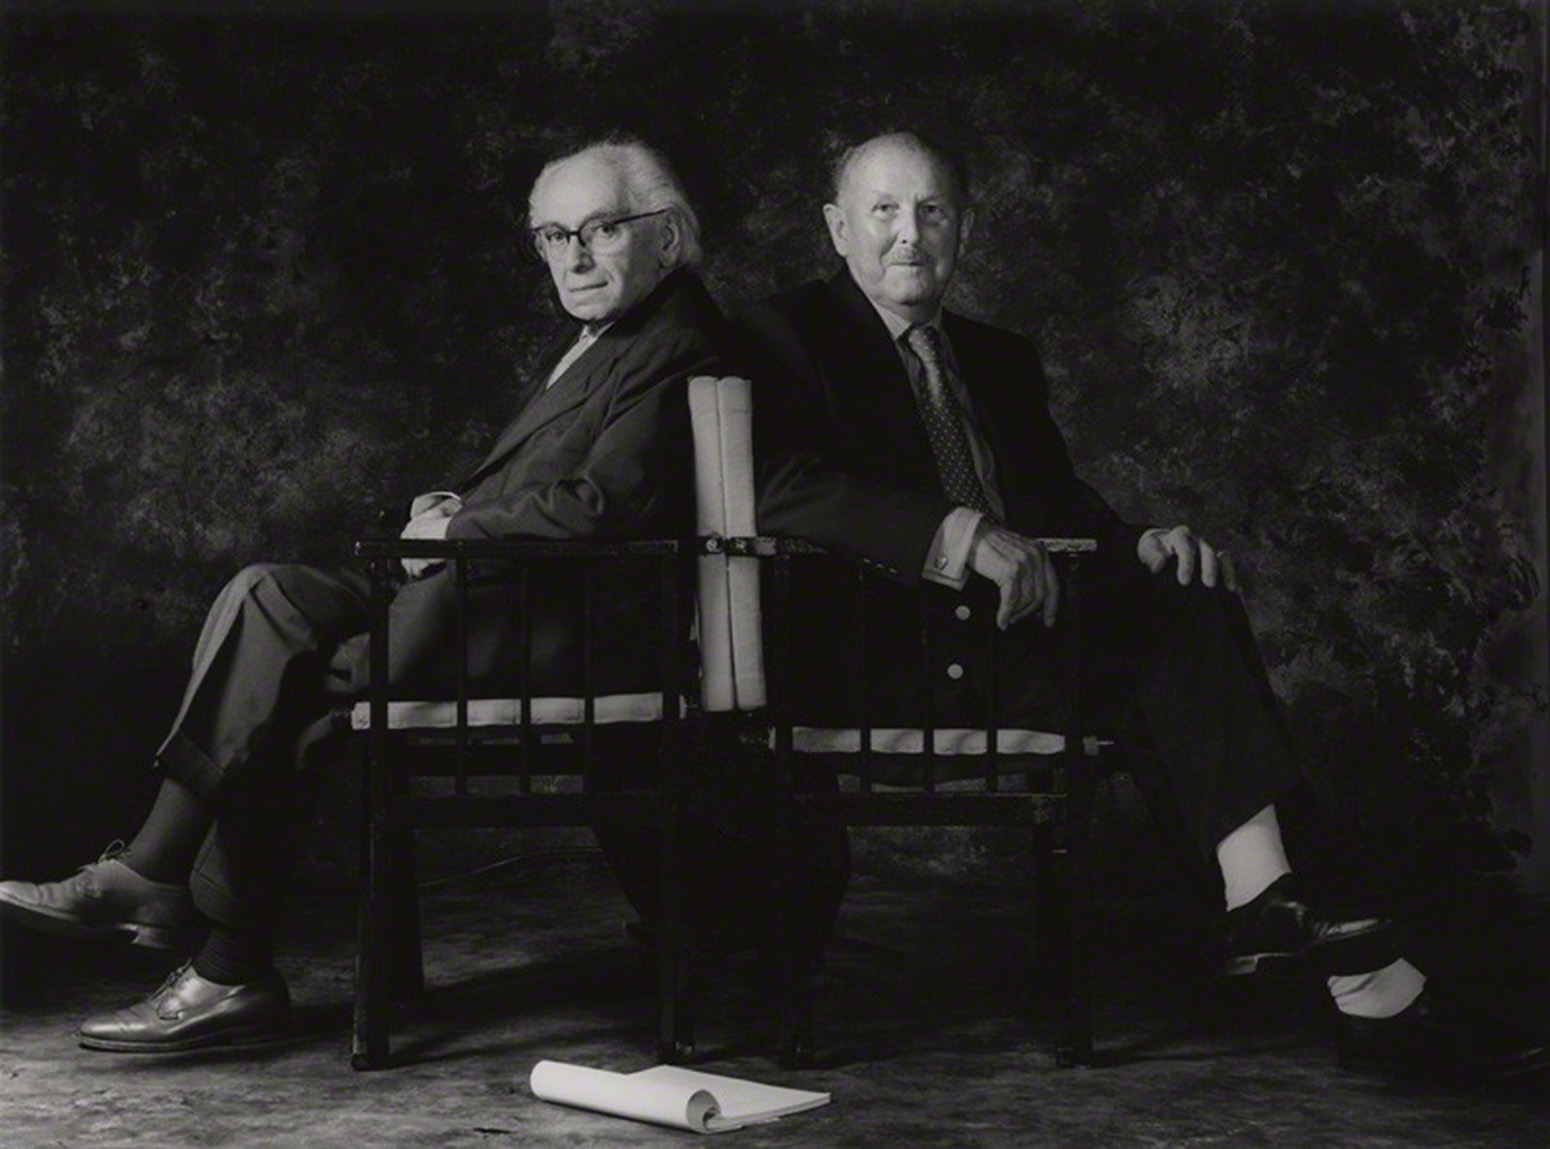 Pressburger (left) and Powell in 1985. (Credit: Cornel Lucas)